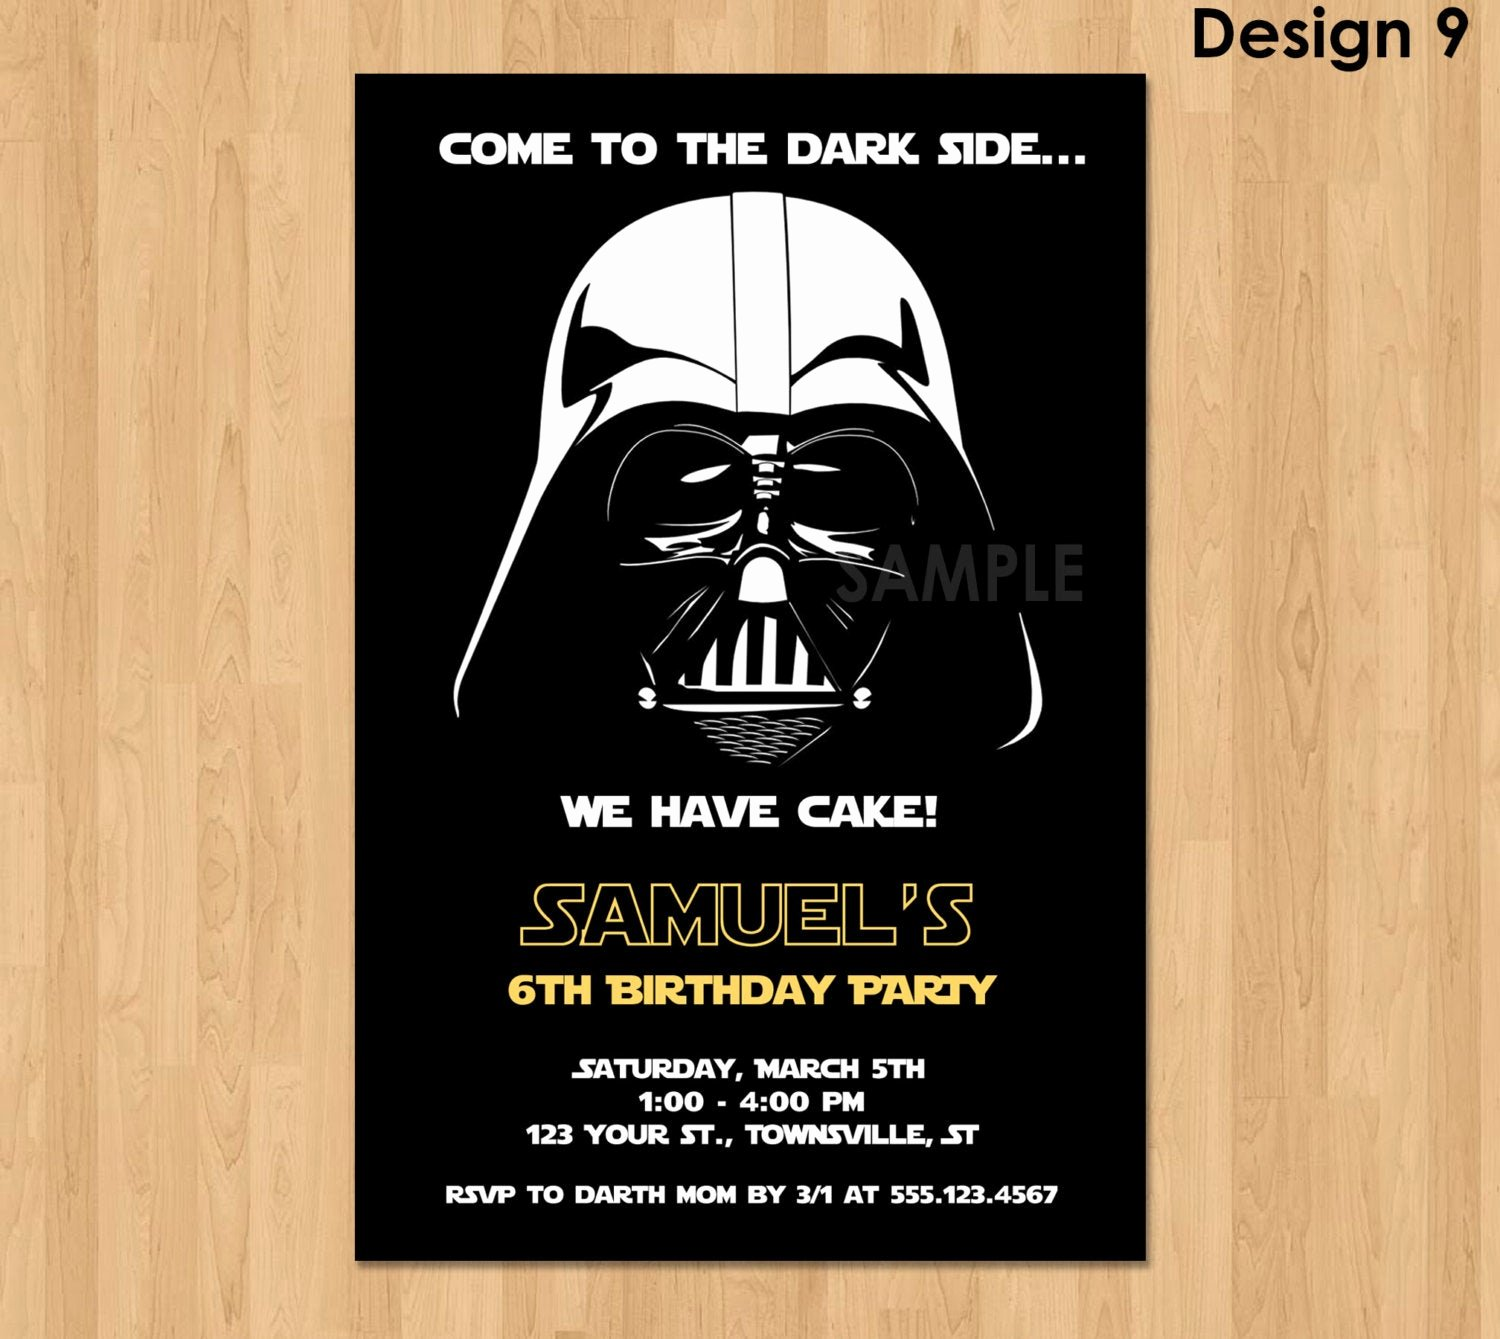 Star Wars Birthday Invitations Luxury Darth Vader Invitation Star Wars Birthday Invitation Star